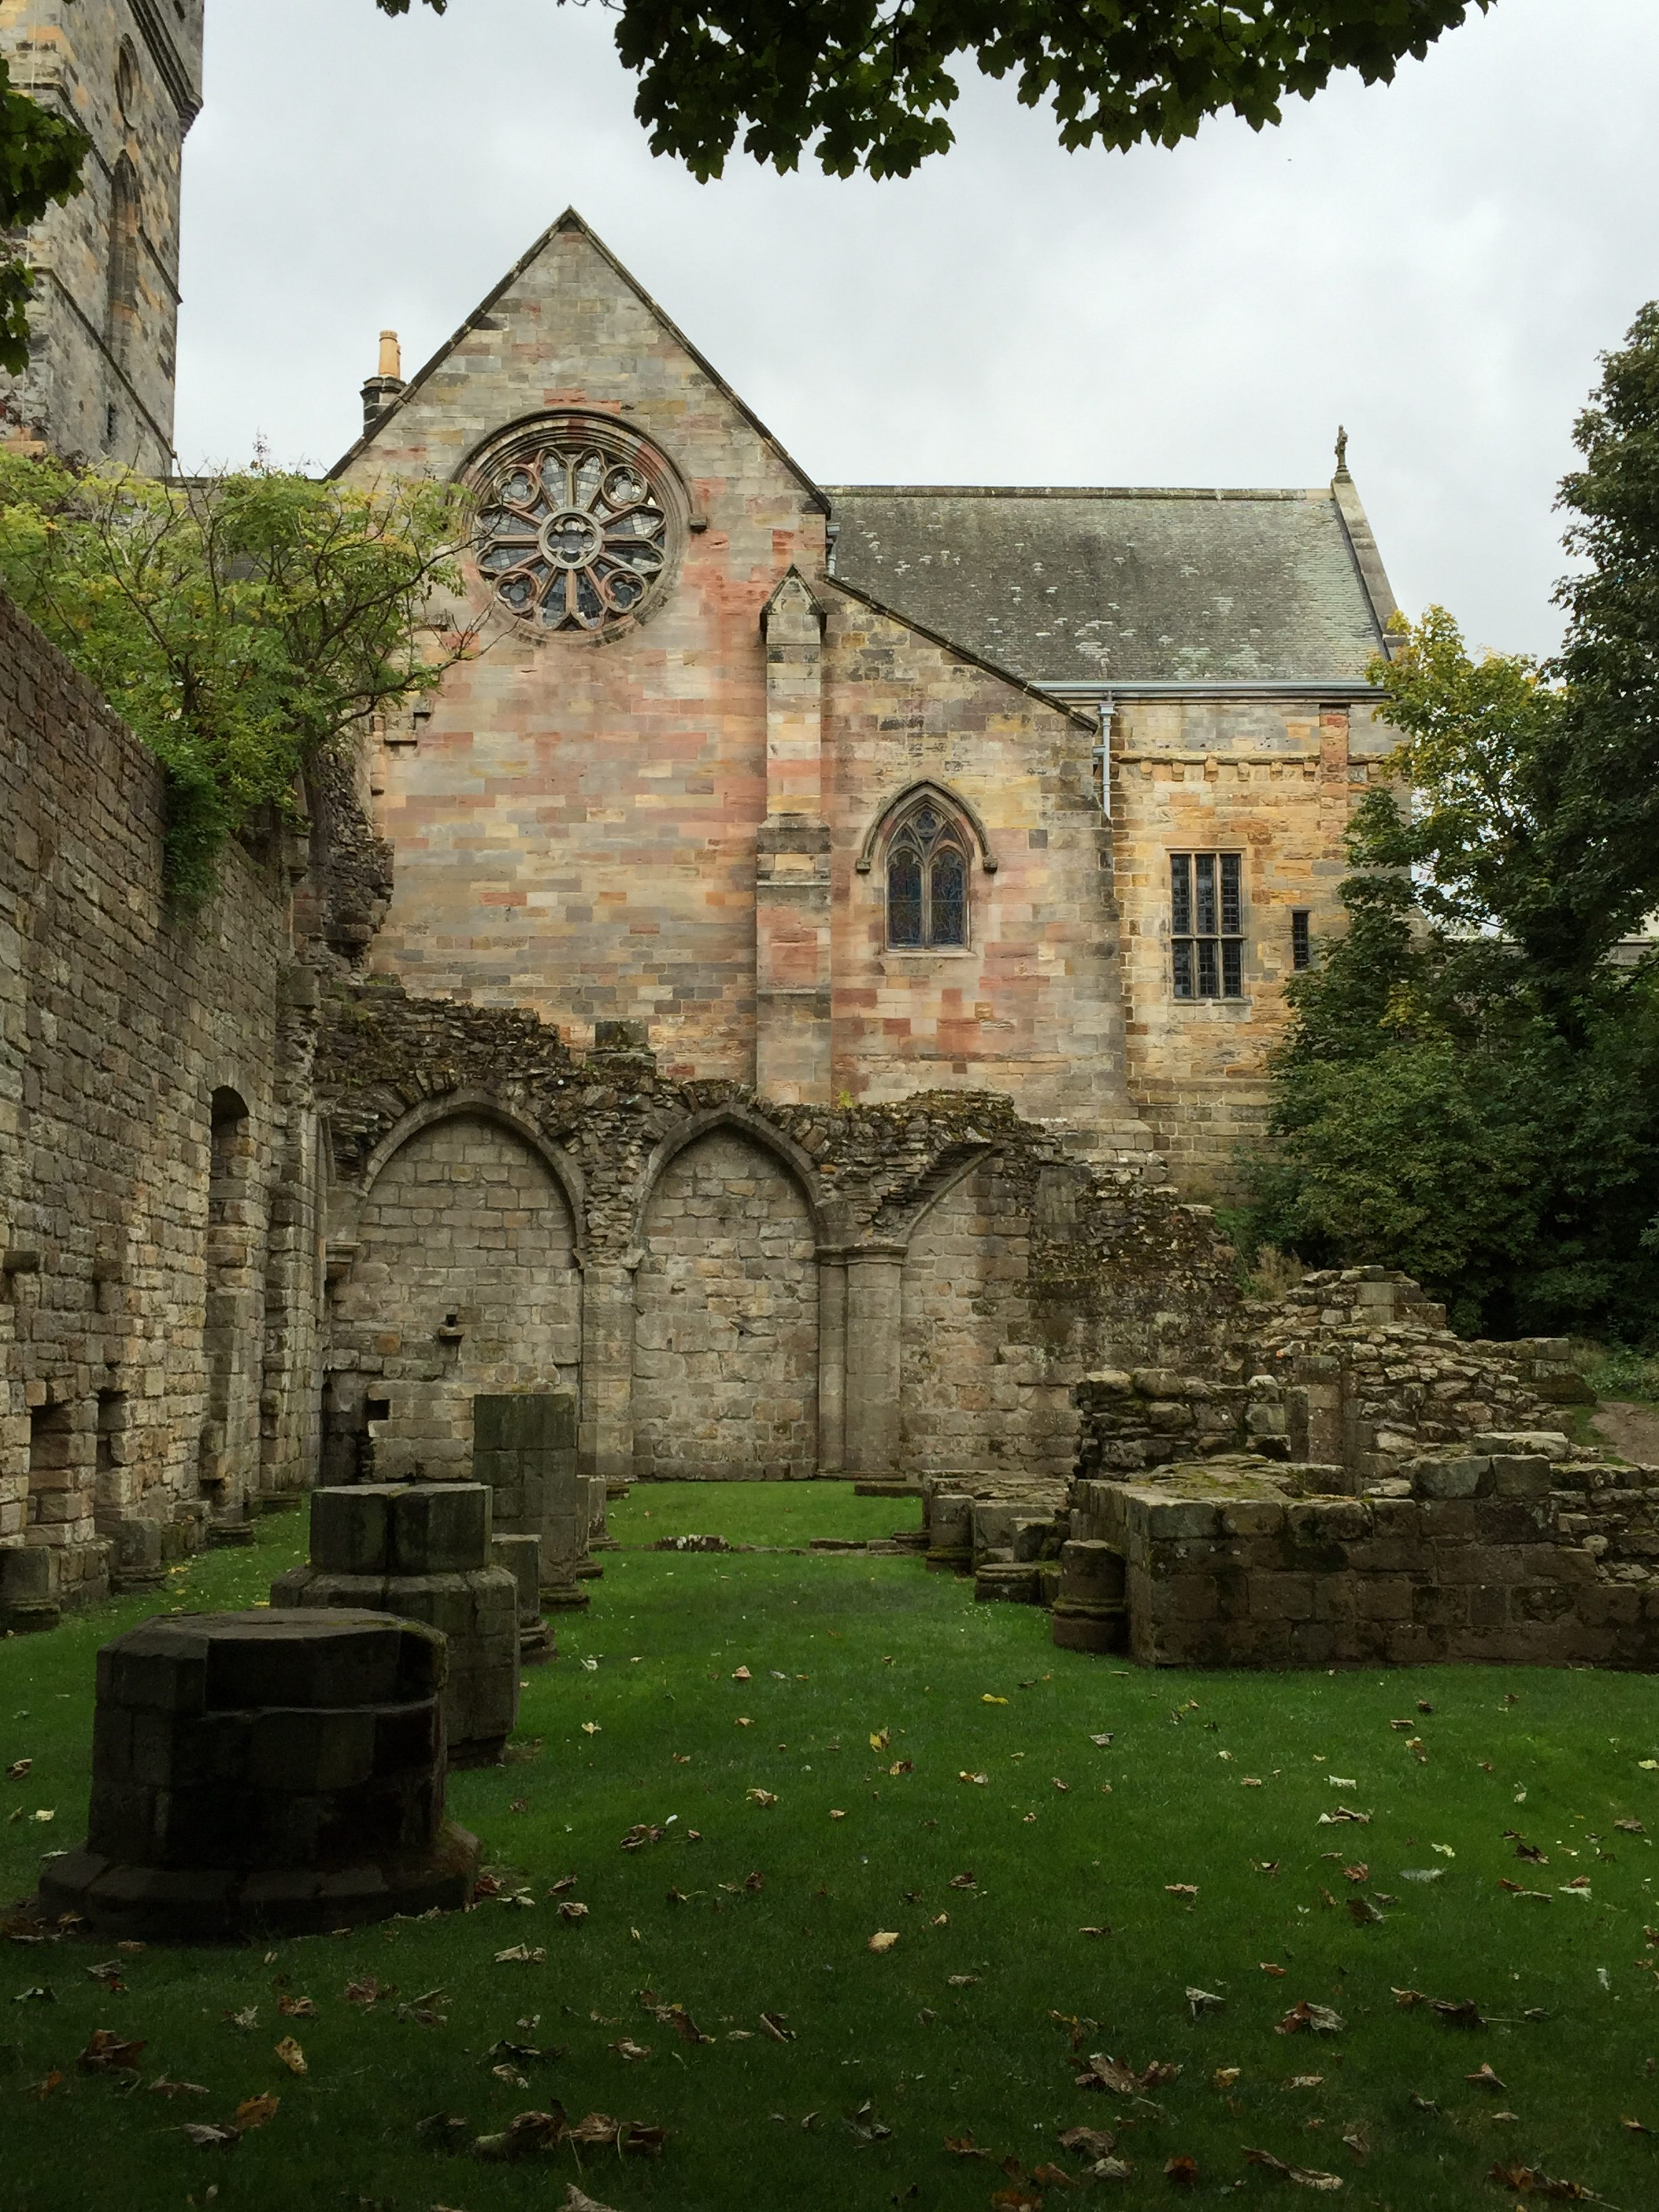 Old abbey church of Culross Abbey, with partially crumbling walls.